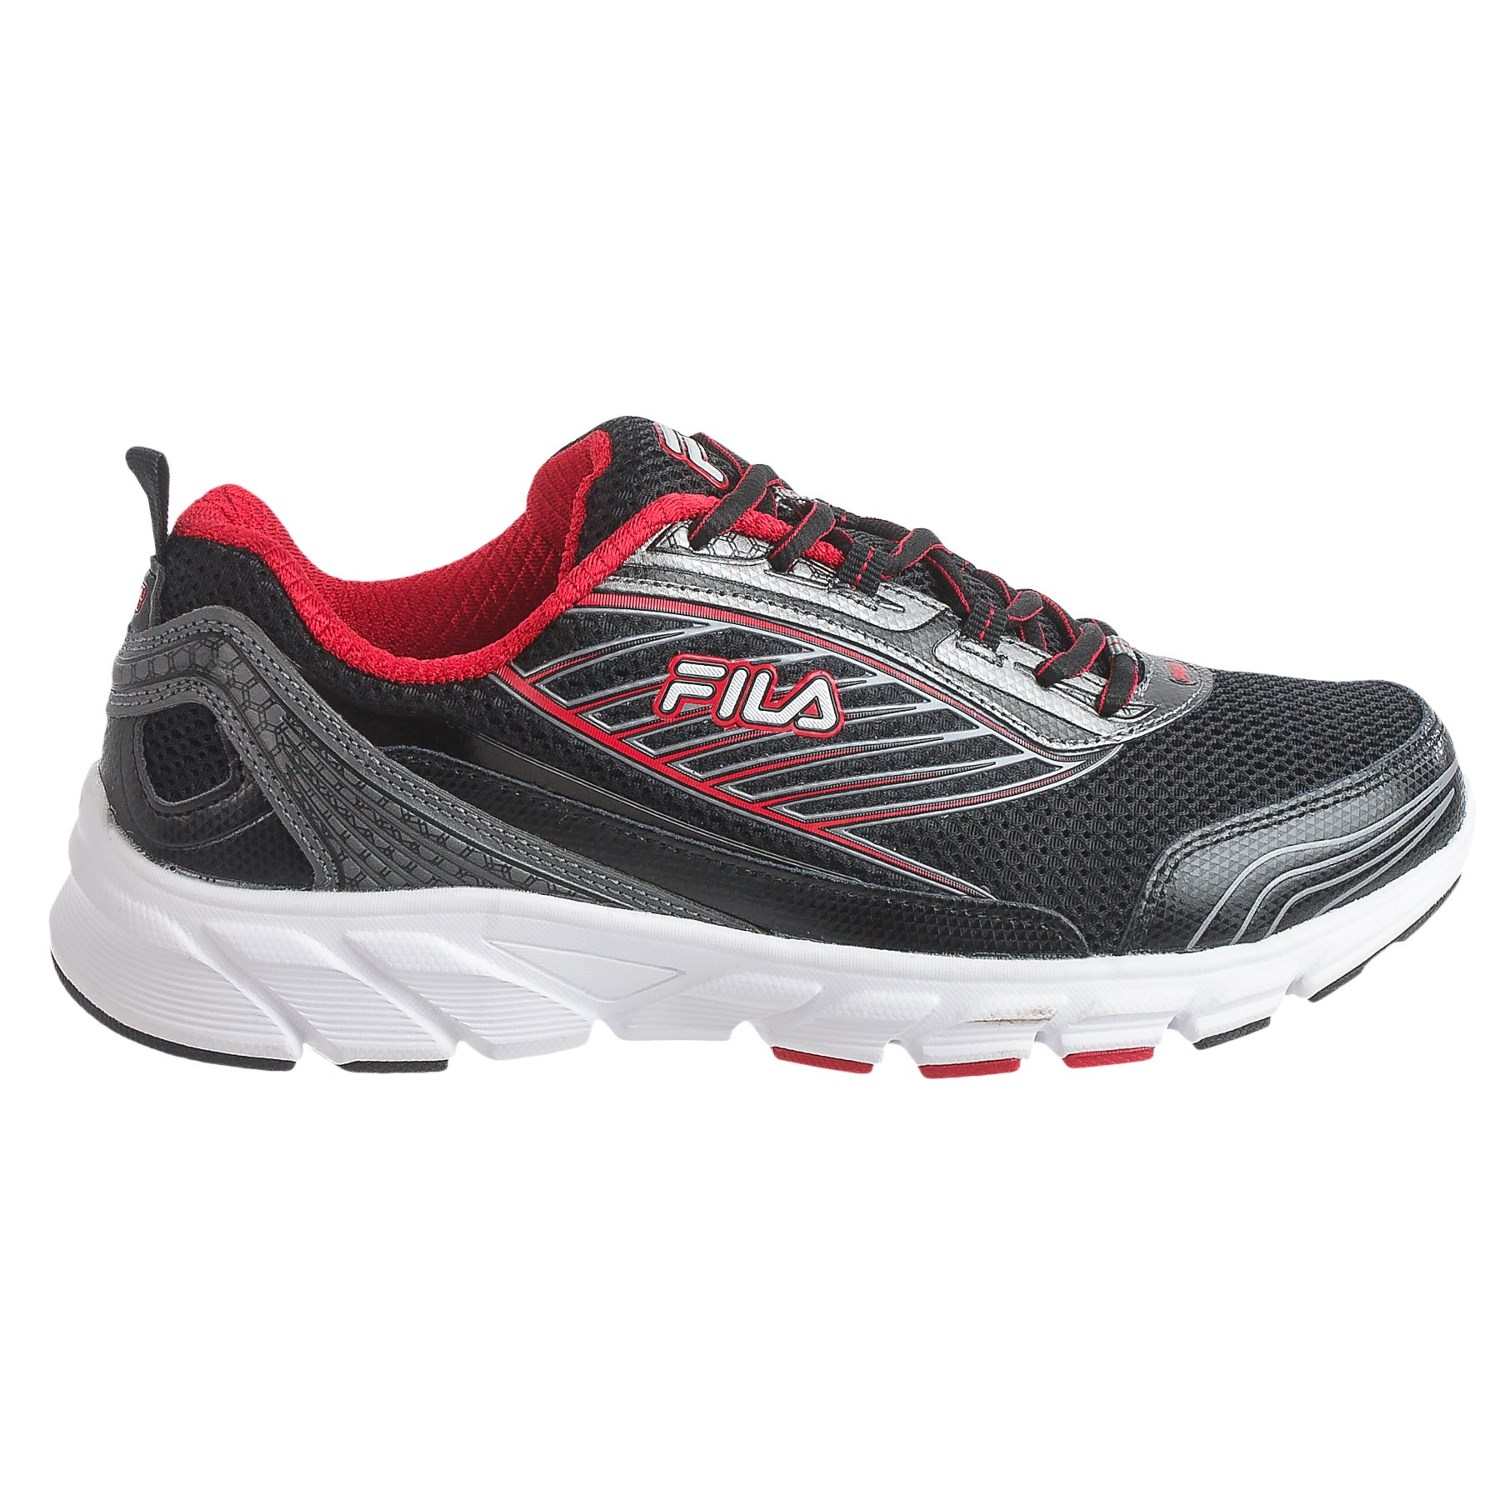 Cheap fila running shoes Buy Online >OFF36% Discounted